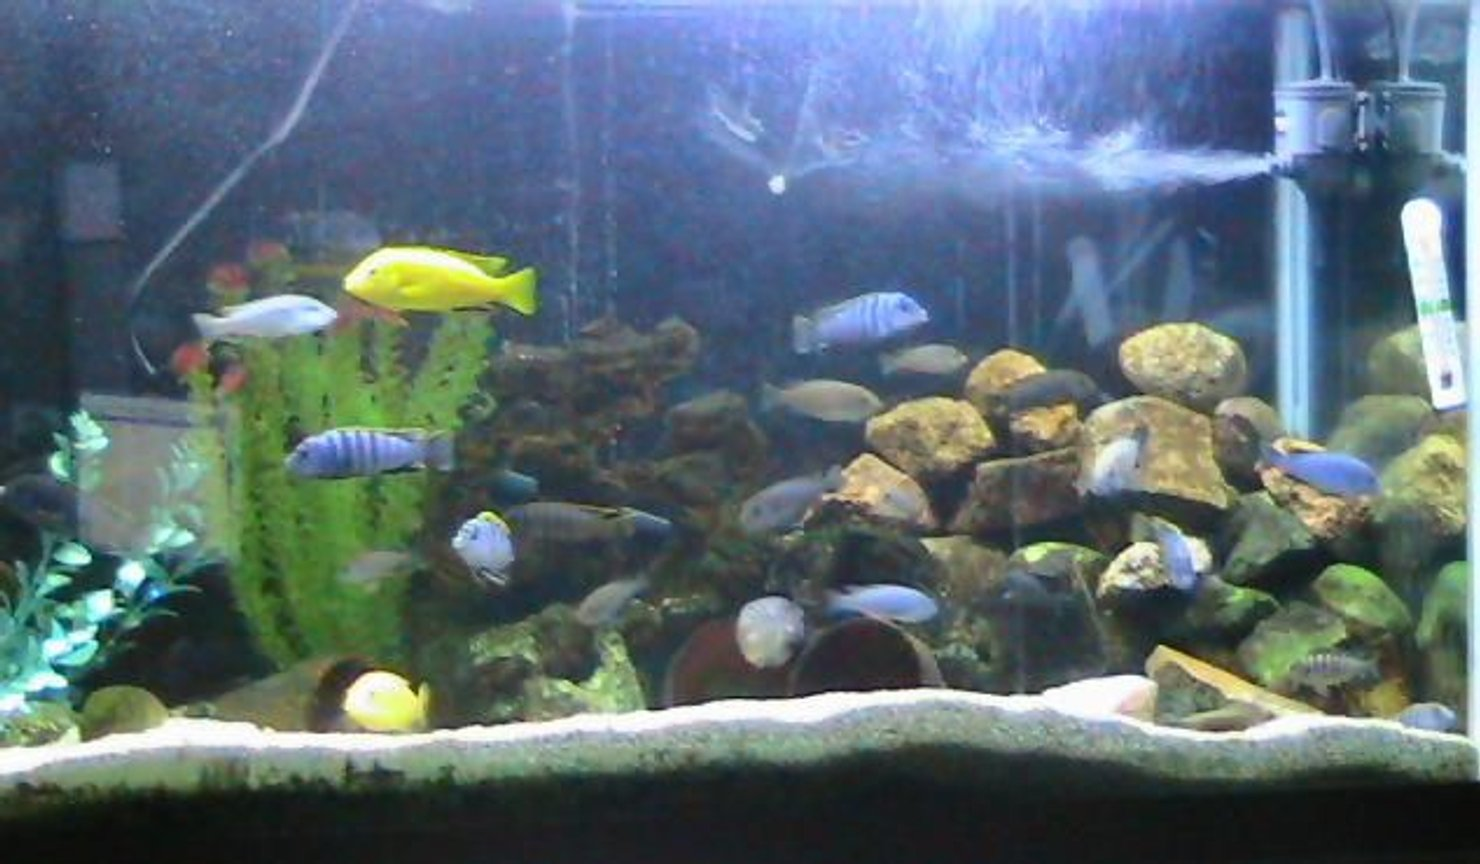 125 gallons freshwater fish tank (mostly fish and non-living decorations) - 90 gal Jalo Reef Afra ,Yellow labs &.Demasoni